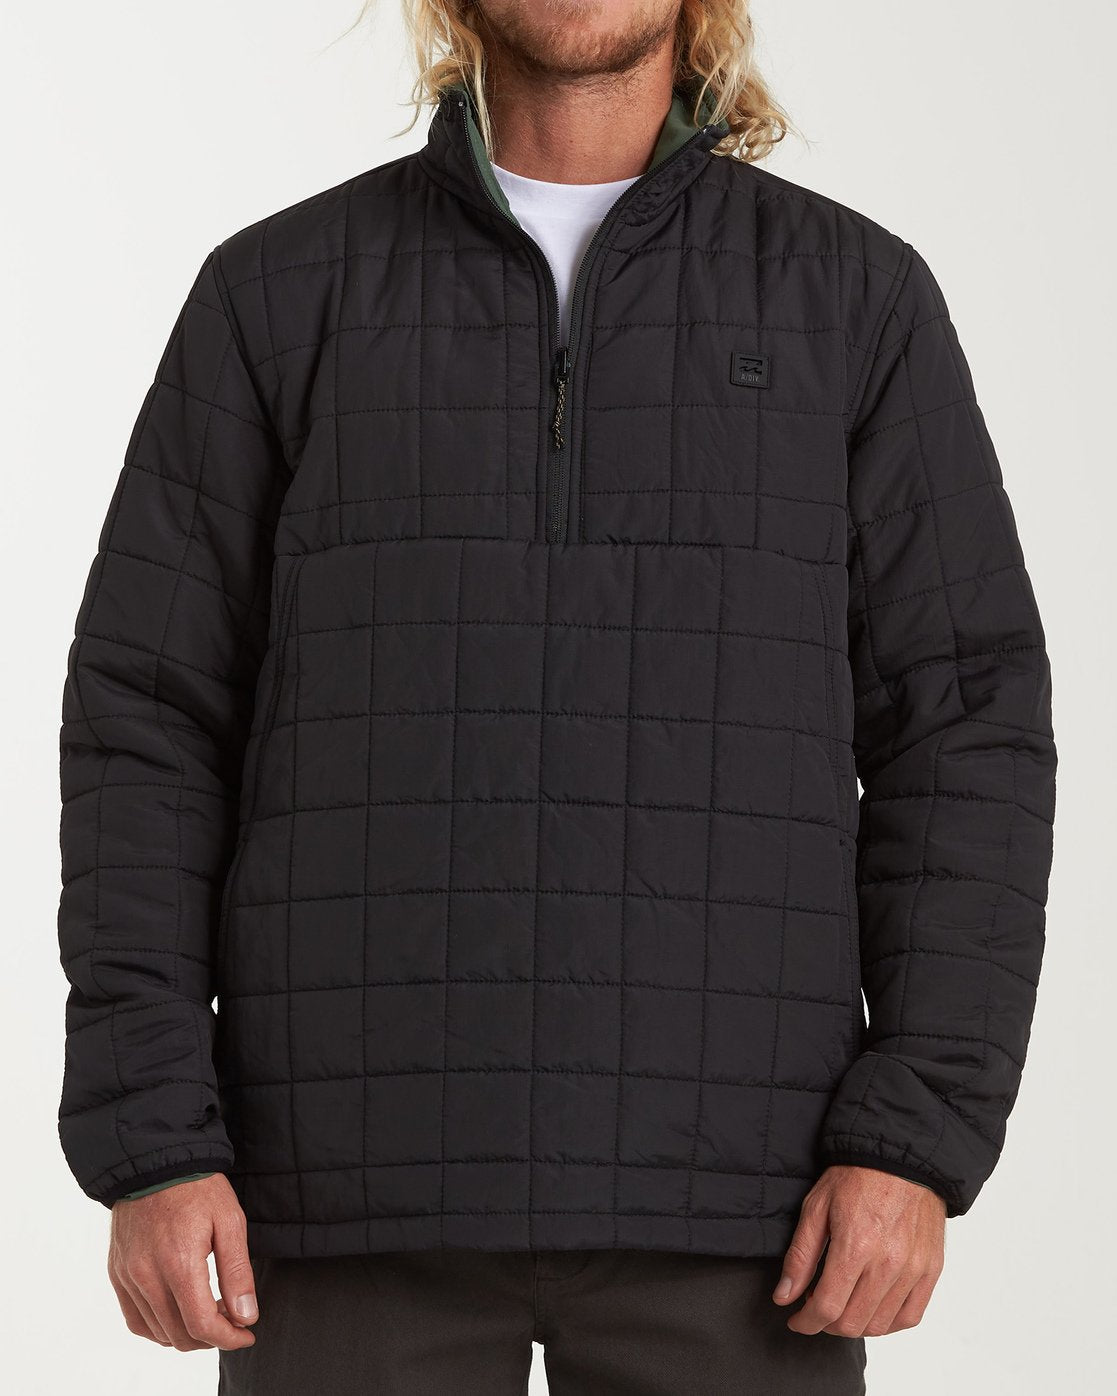 Billabong Boundary Reversible Jacket - 88 Gear